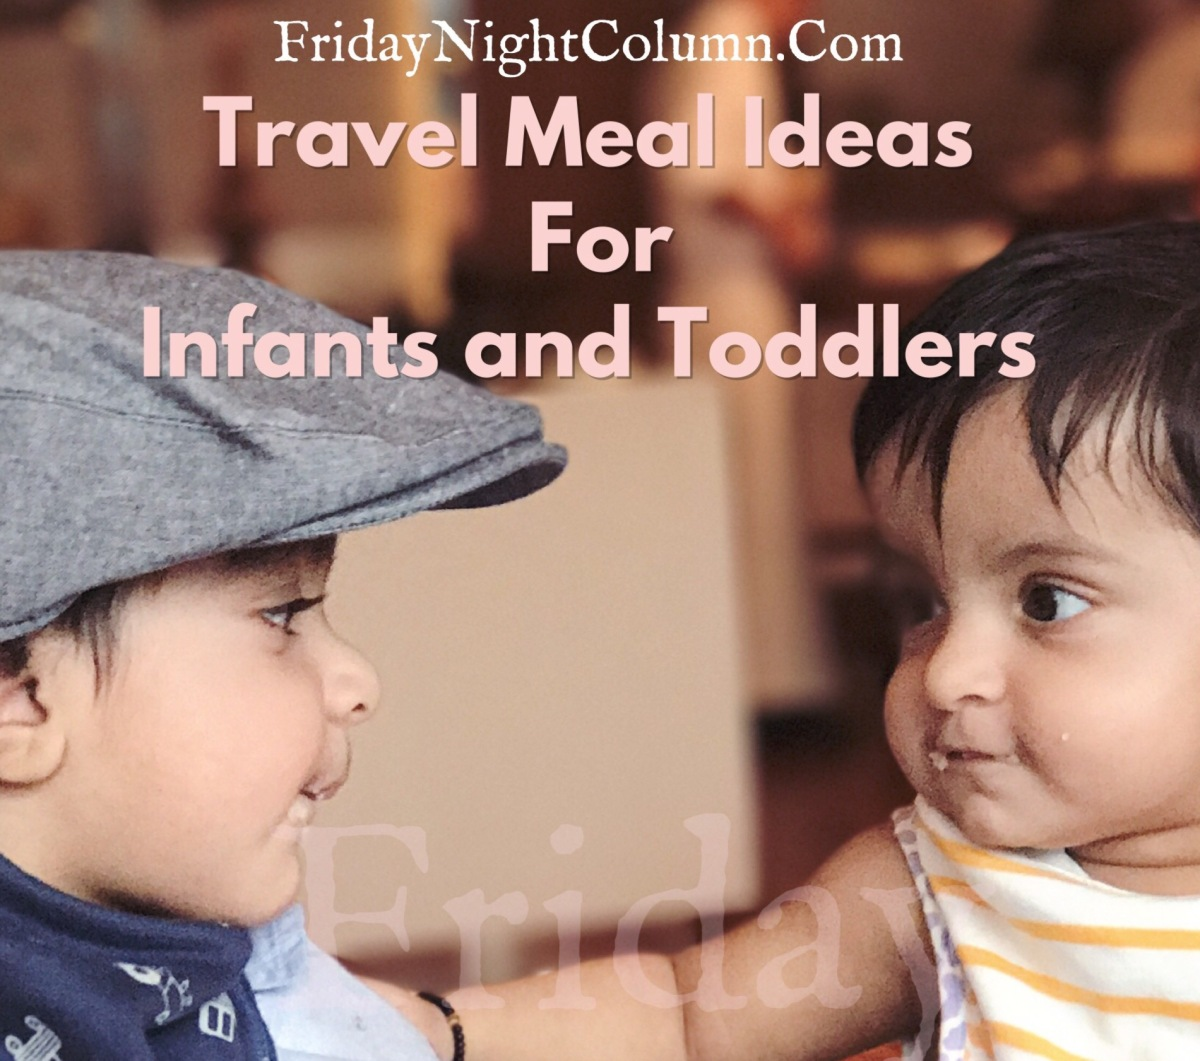 Travel Meal Ideas For Infants and Toddlers